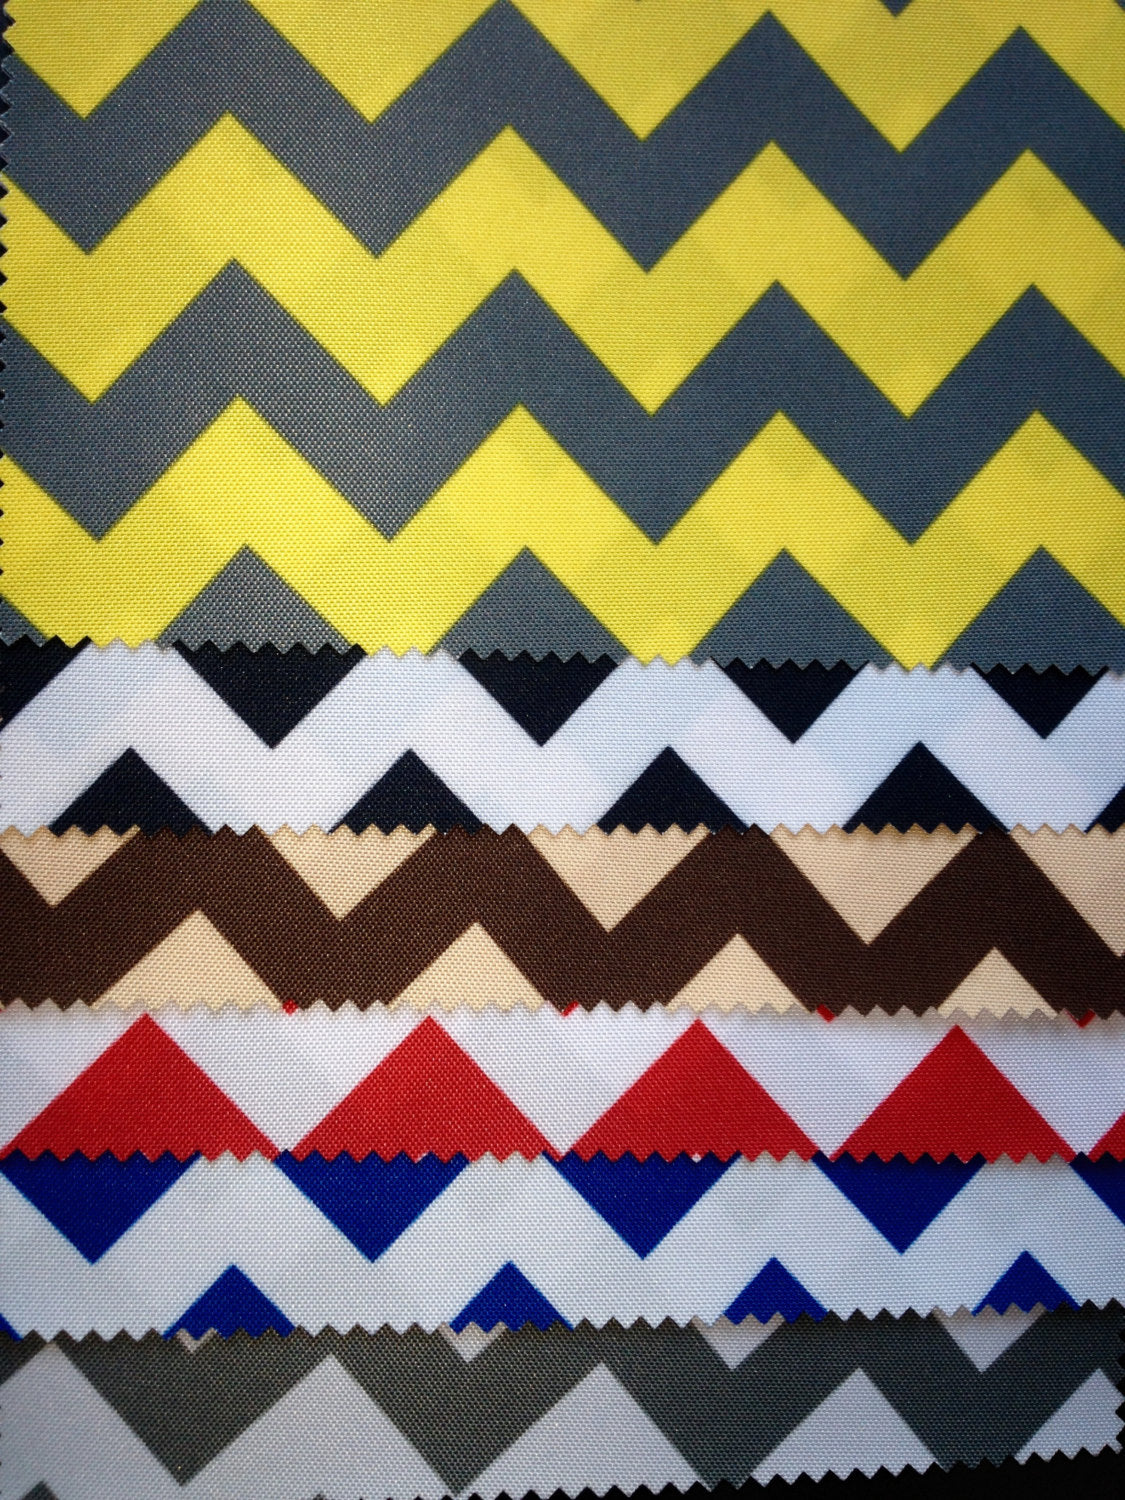 "Chevron Zig Zag 600 Denier Waterproof UV Protection Polyester Canvas 60"" Wide 